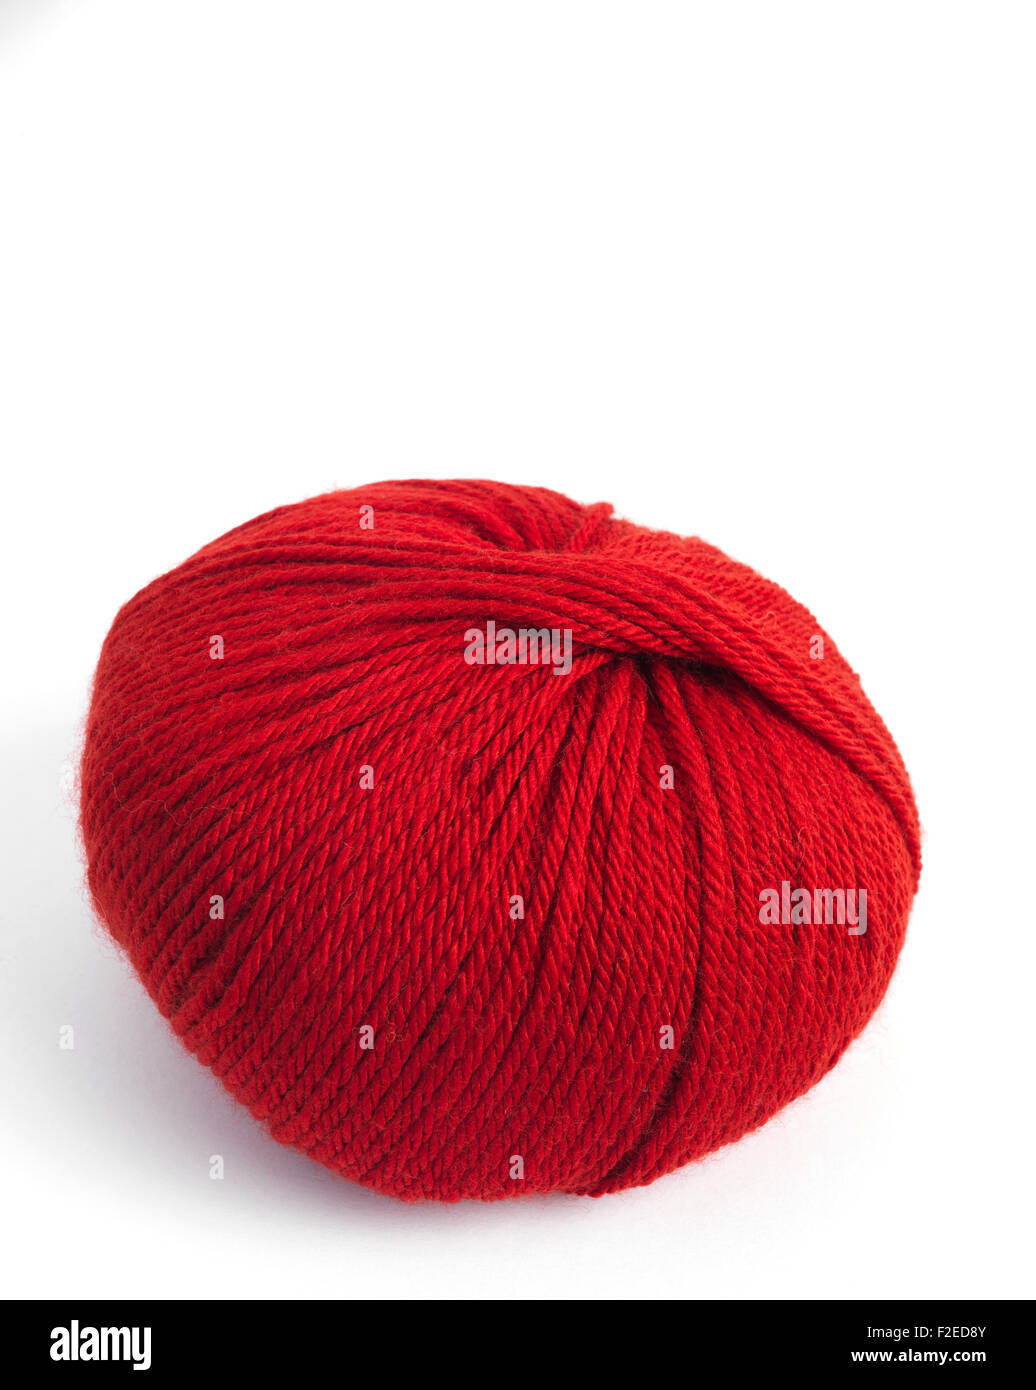 Red Wool Ball - Stock Image